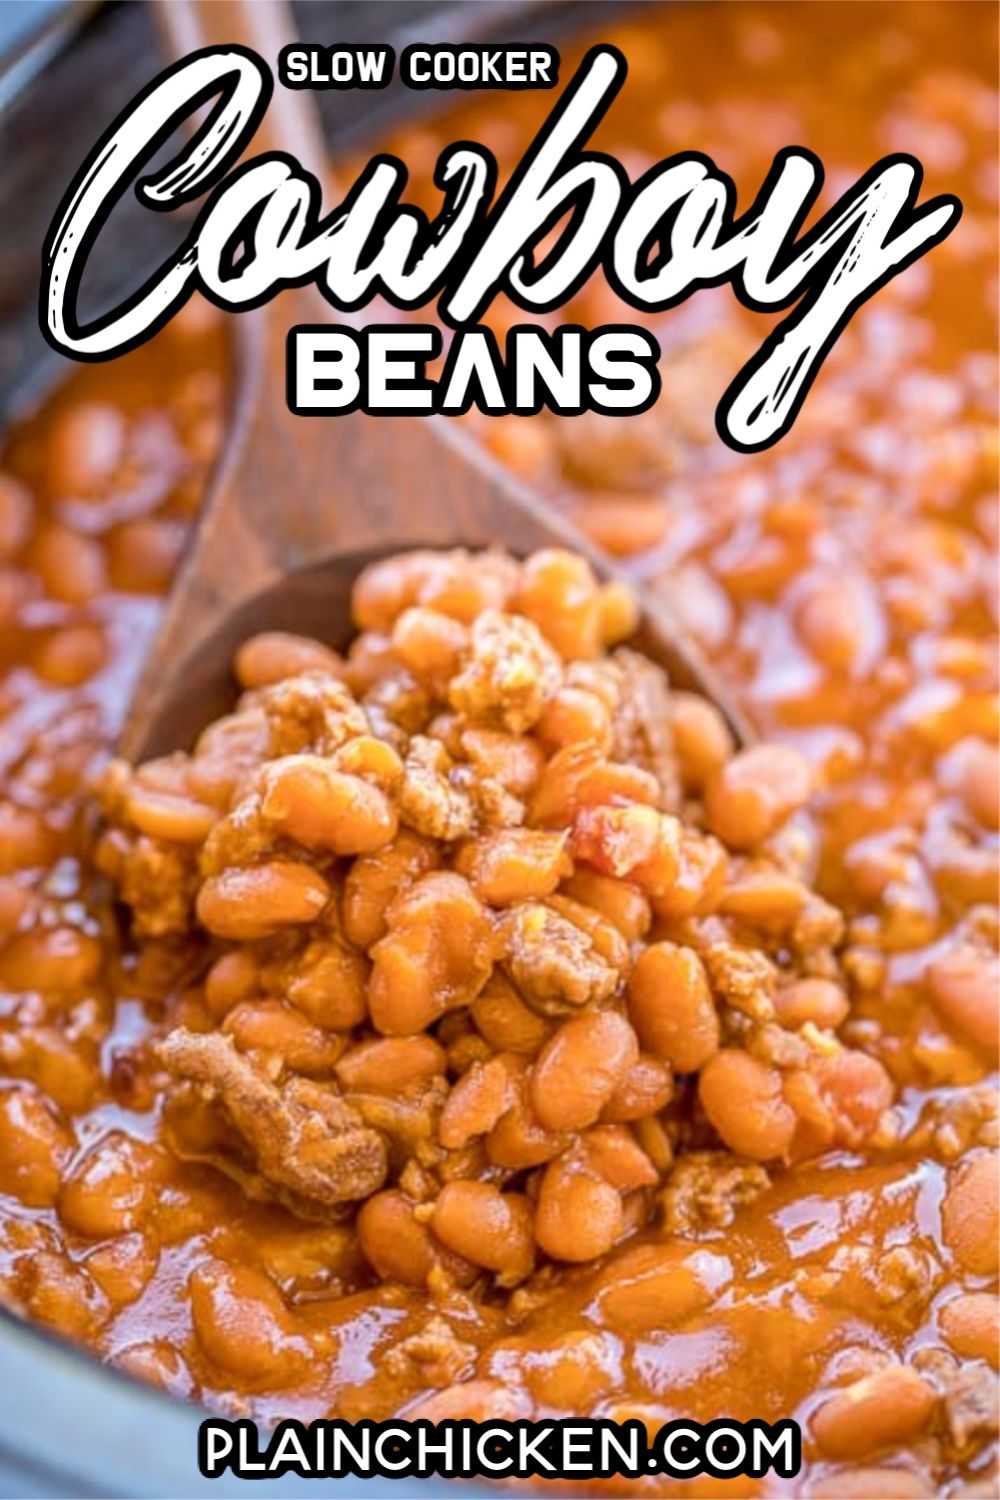 Slow Cooker Cowboy Beans Seriously The Best Baked Beans I Ve Ever Eaten Loaded With Beef And Bacon So Ea In 2020 Cowboy Beans Baked Bean Recipes Best Baked Beans